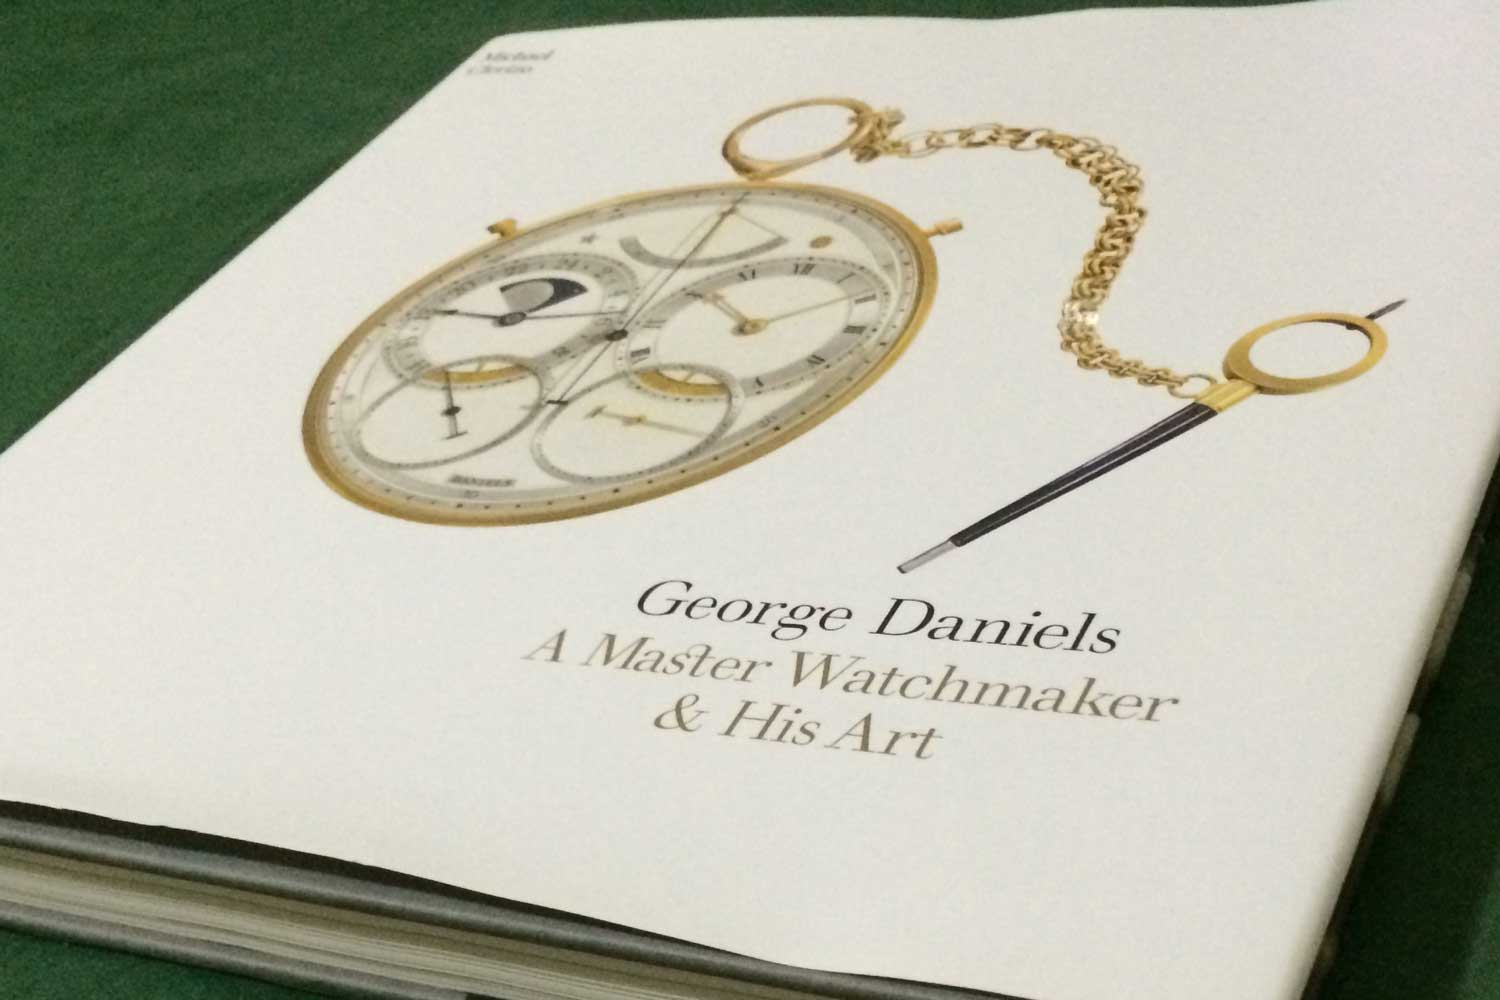 George Daniels – A Master Watchmaker & His Art (Thames & Hudson, London, 2013)